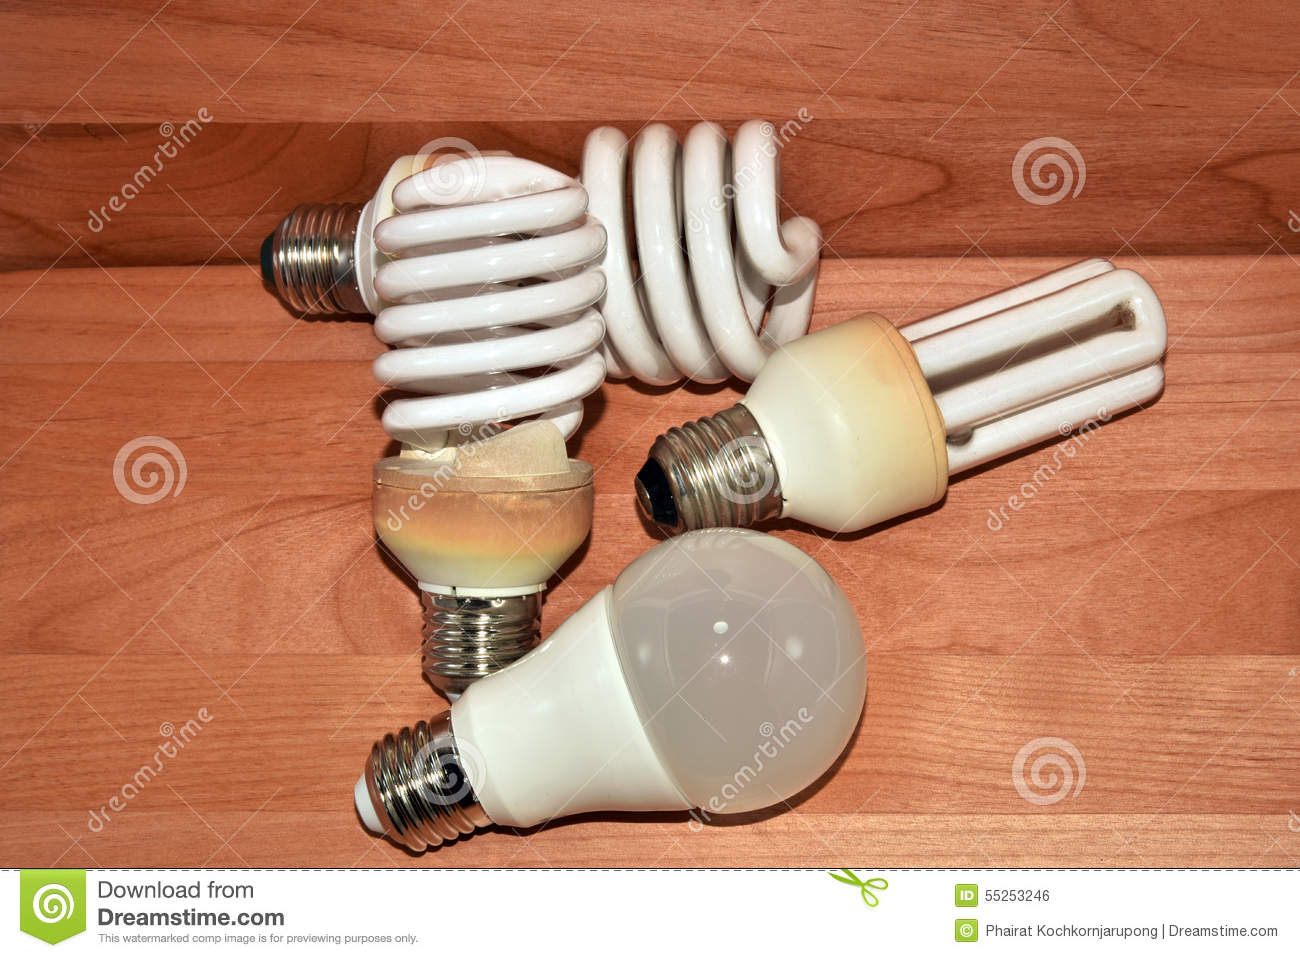 how to change ilumi bulb time